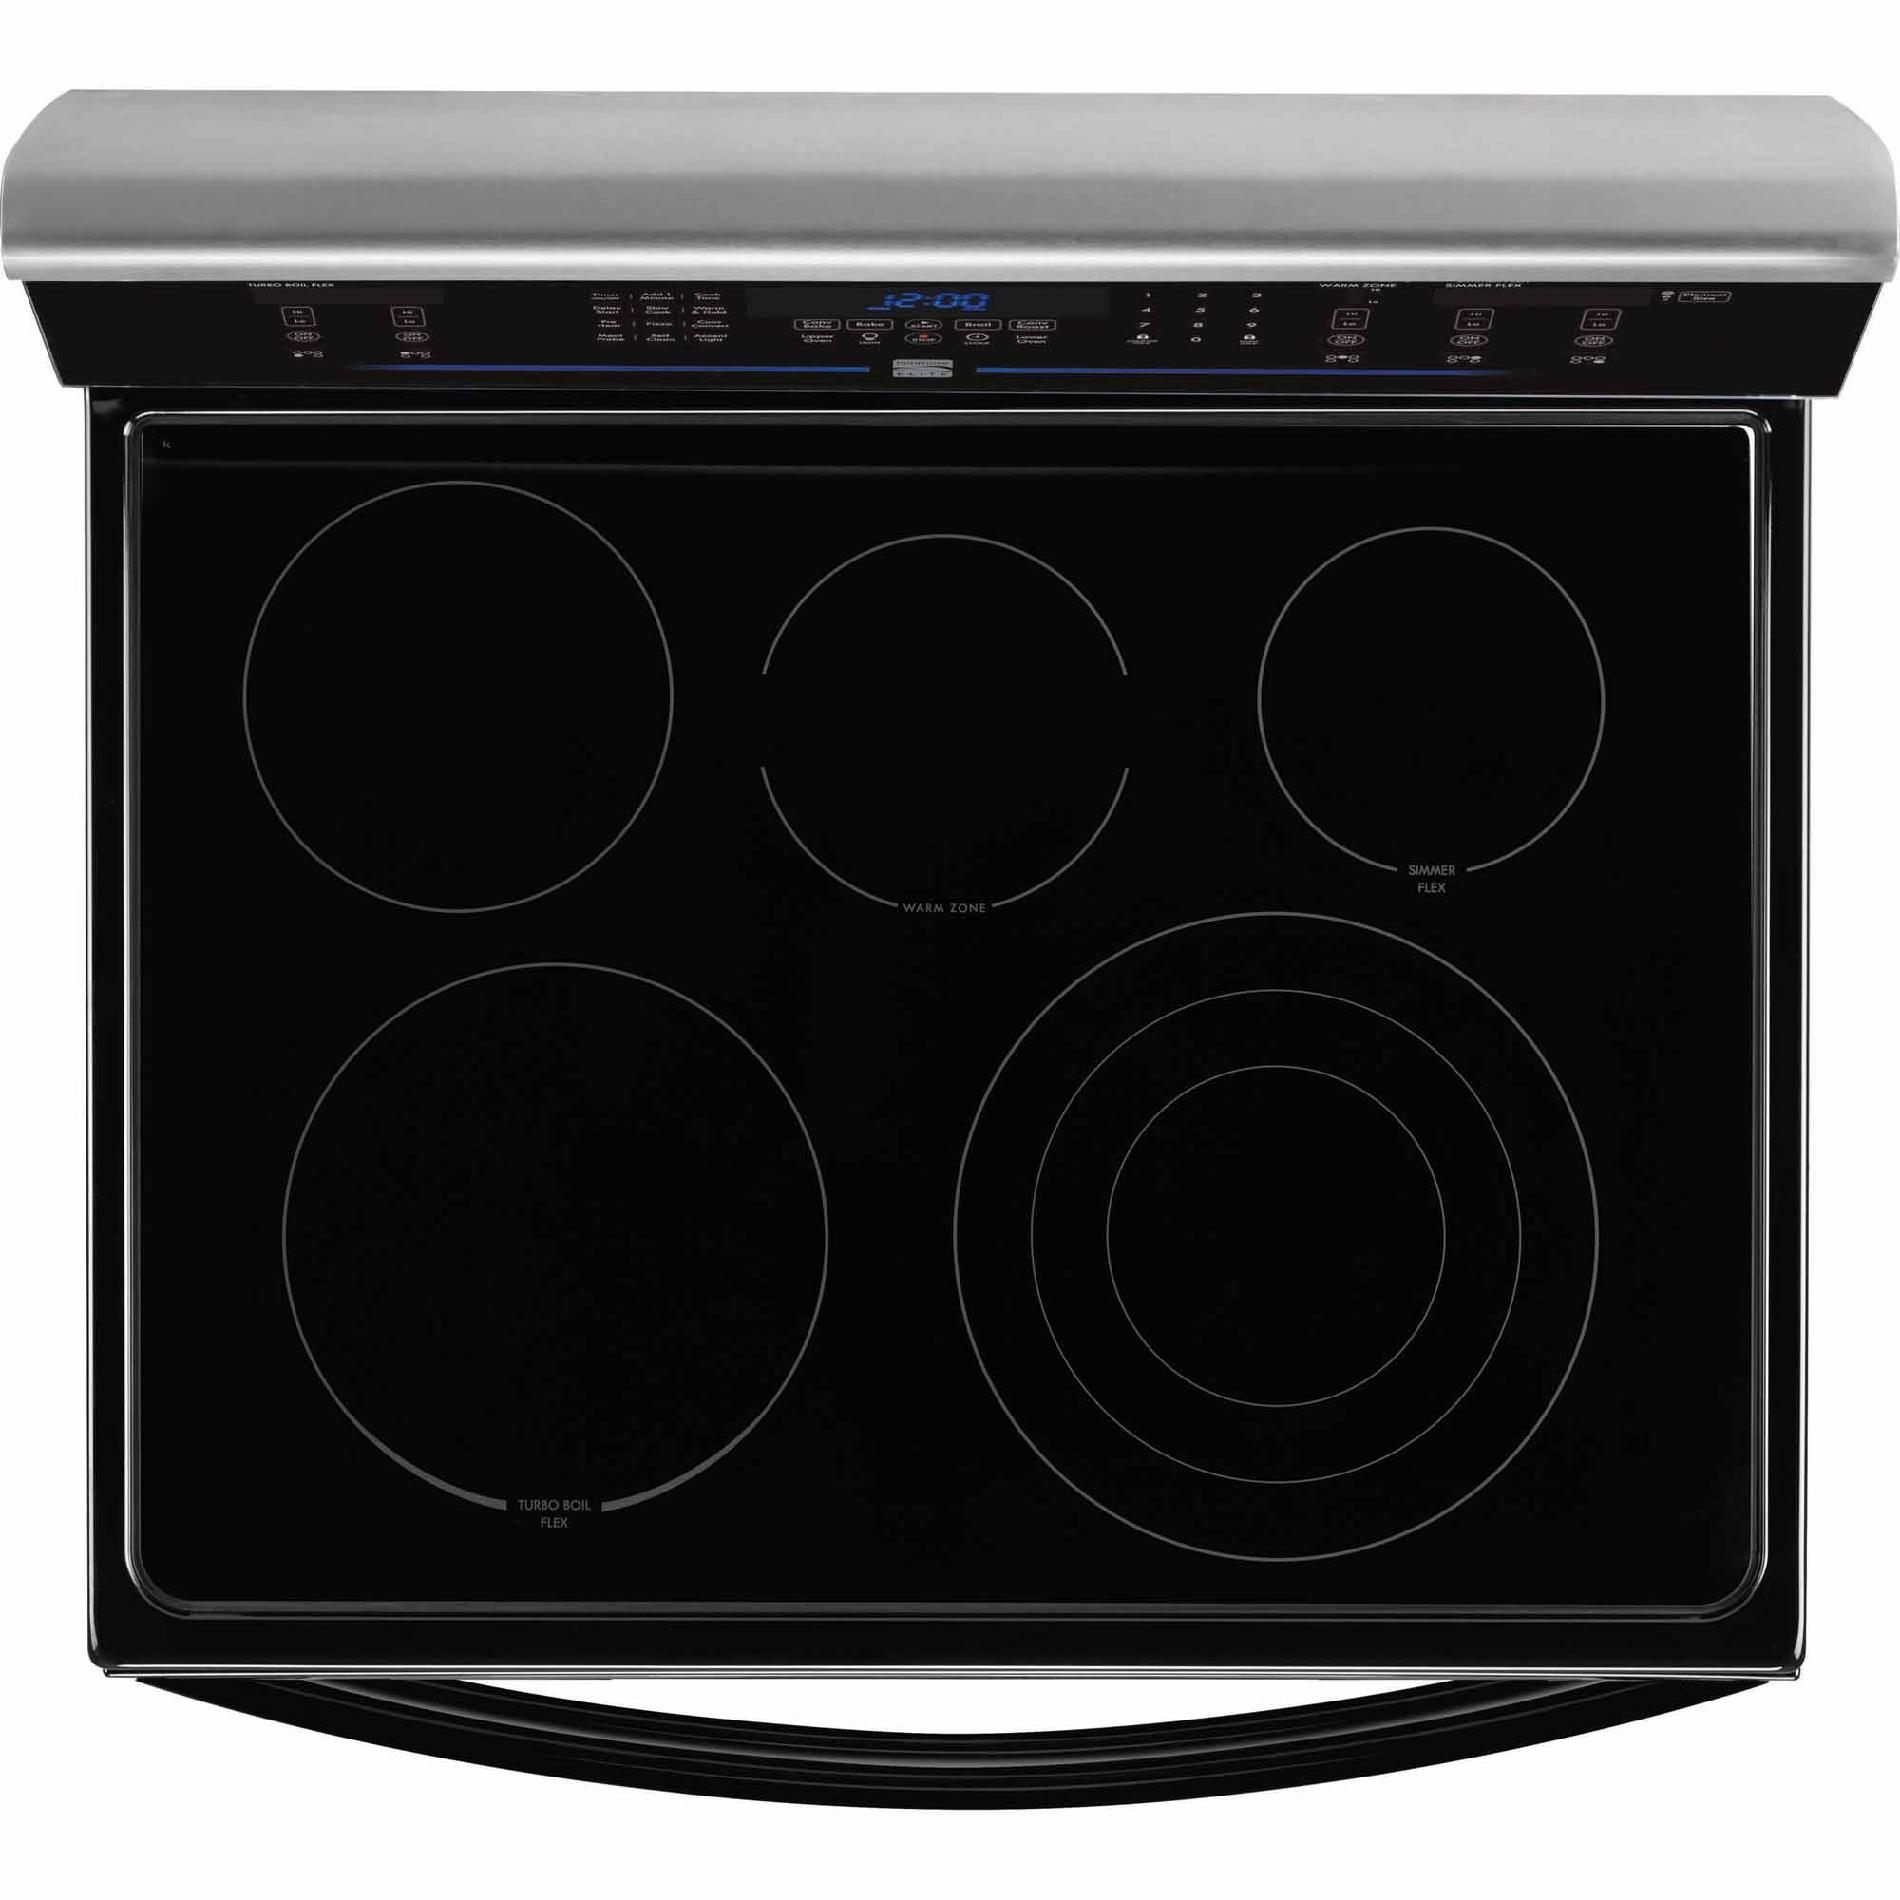 Kenmore Elite 97713 7.2 cu. ft. Double-Oven Electric Range w/ True Convection - Stainless